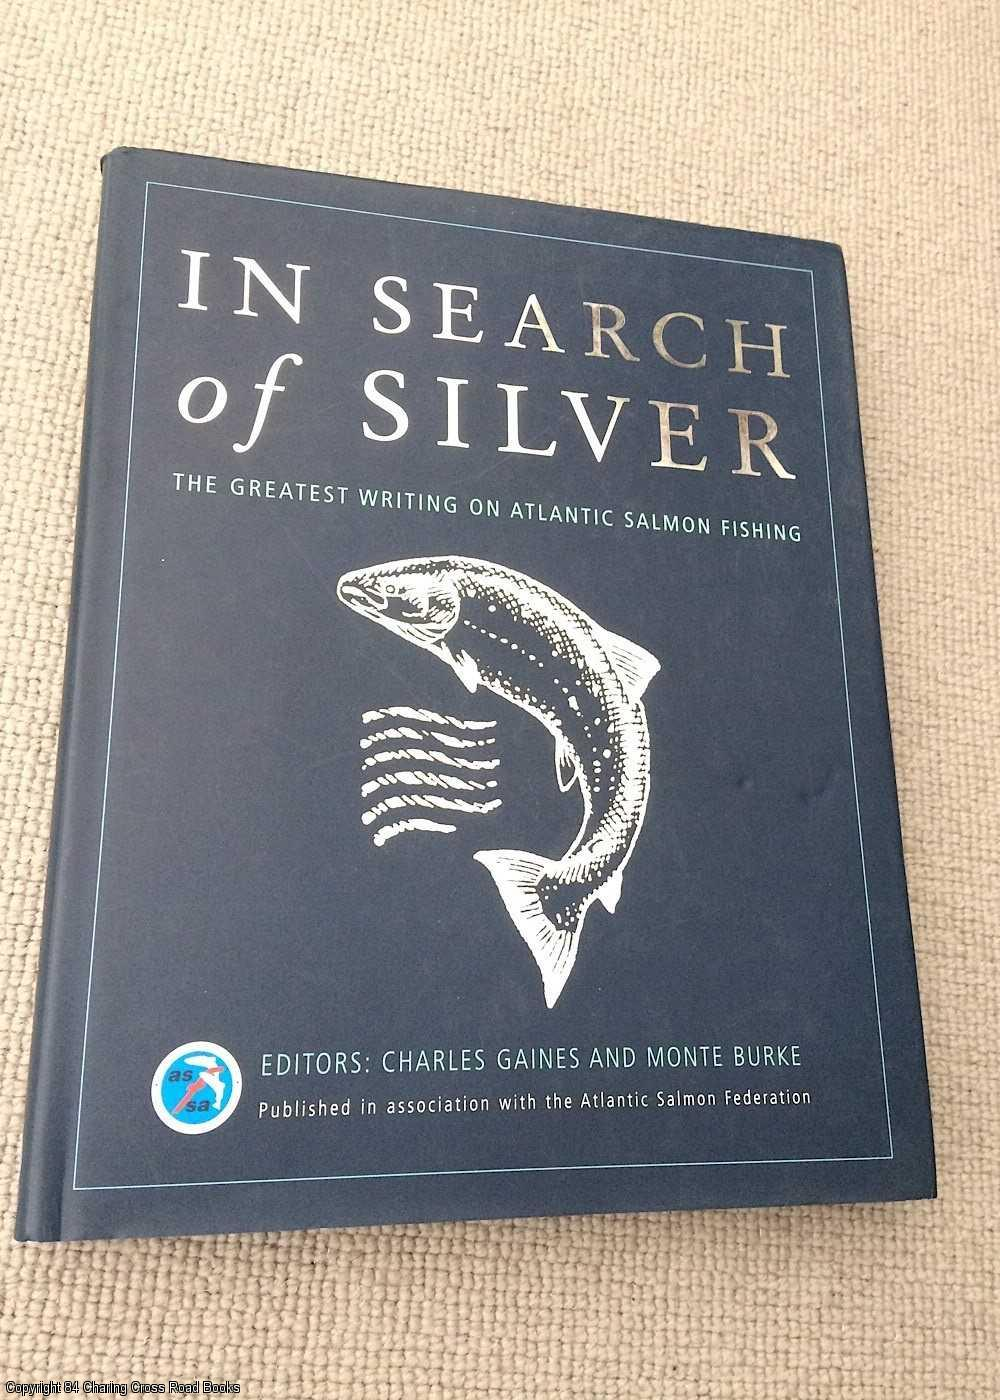 BURKE, MONTE, GAINES, CHARLES - In Search of Silver: The Greatest Writing on Atlantic Salmon Fishing